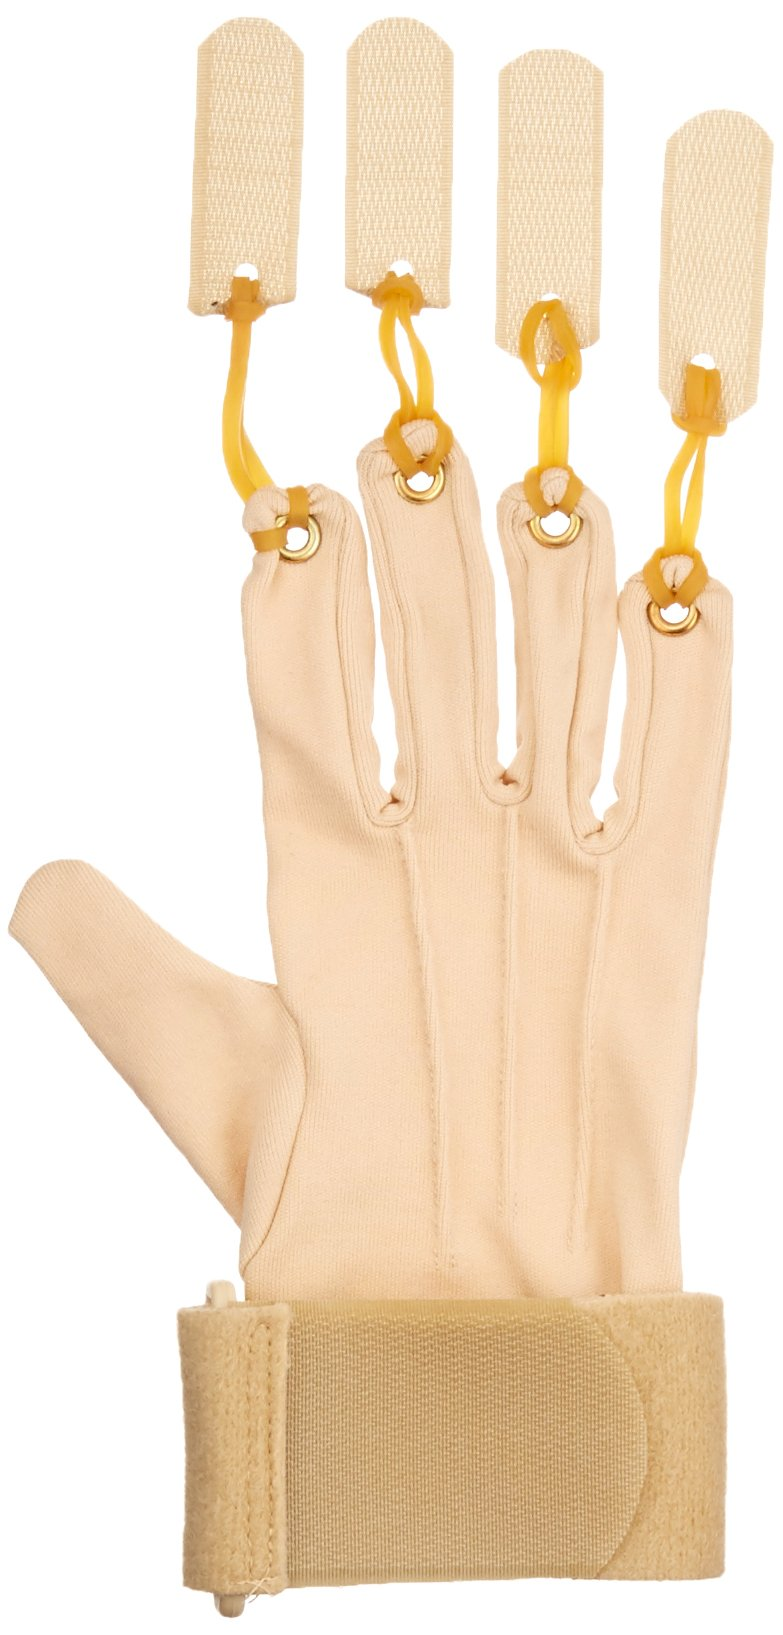 Sammons Preston Deluxe Traction Glove, Right Handed Exercise Glove, Rehabilitation & Physical Therapy Gloves for Flexion of Joints & Fingers, Hand Exerciser for Increasing Strength, Small/Medium